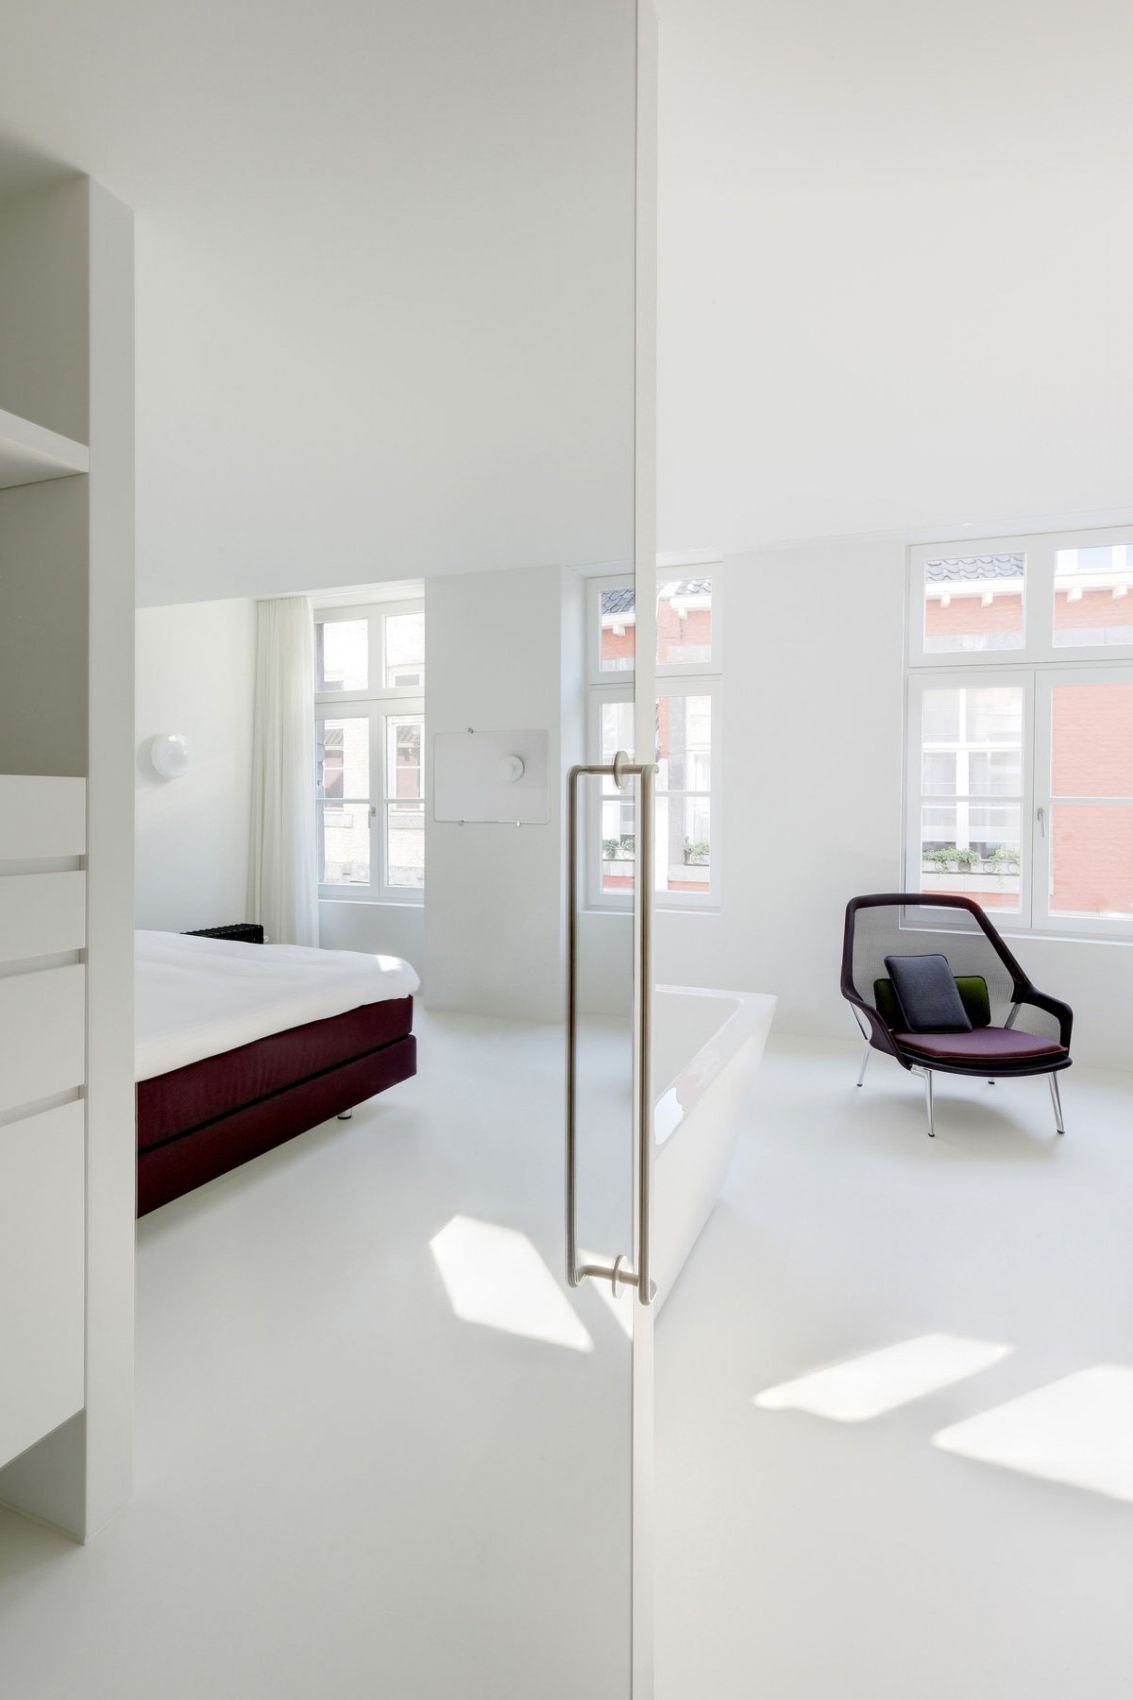 Amusing Bdroom Design With Glass Door